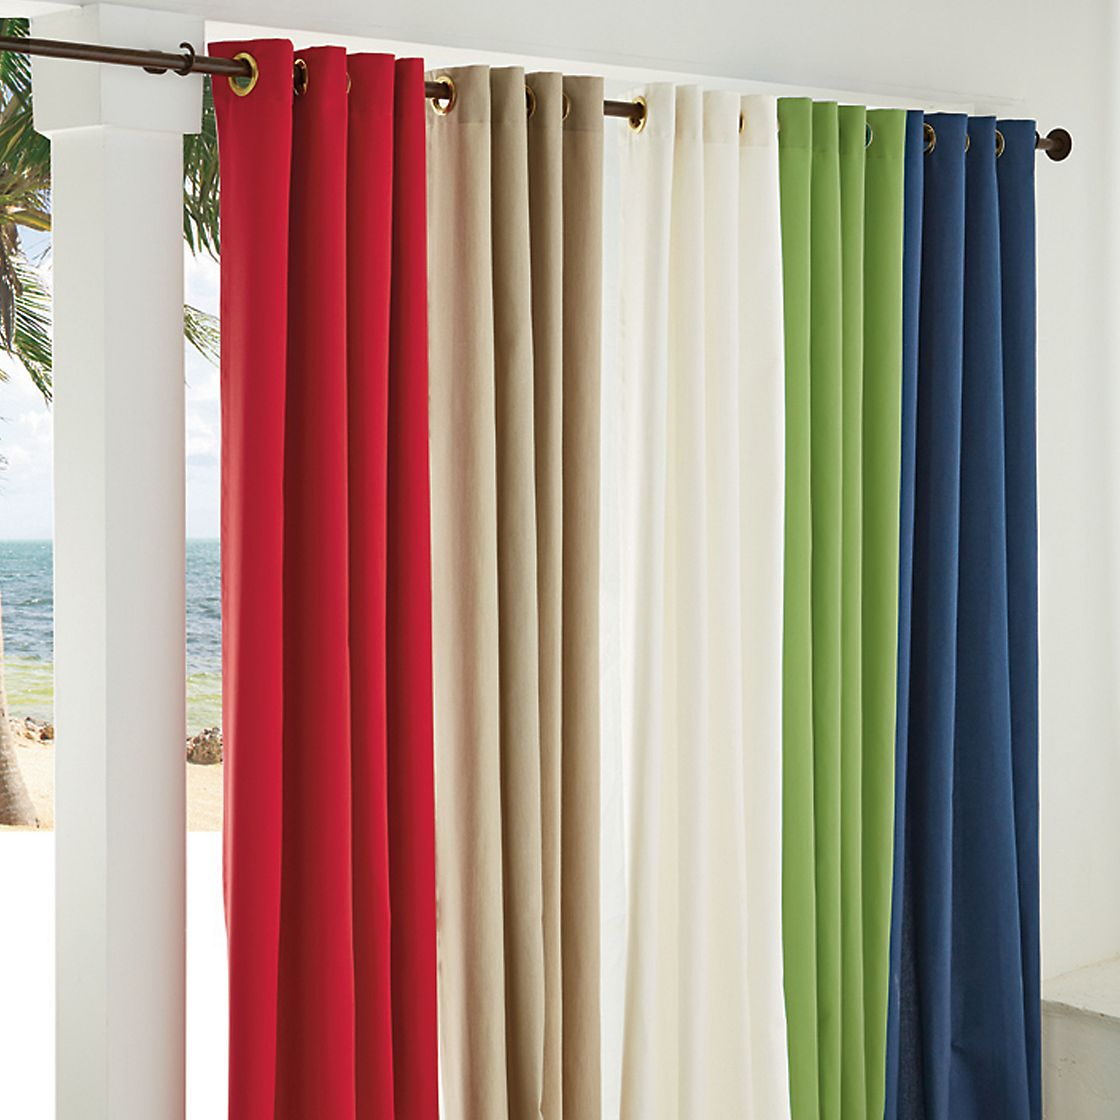 outdoor curtains clearance photo - 2